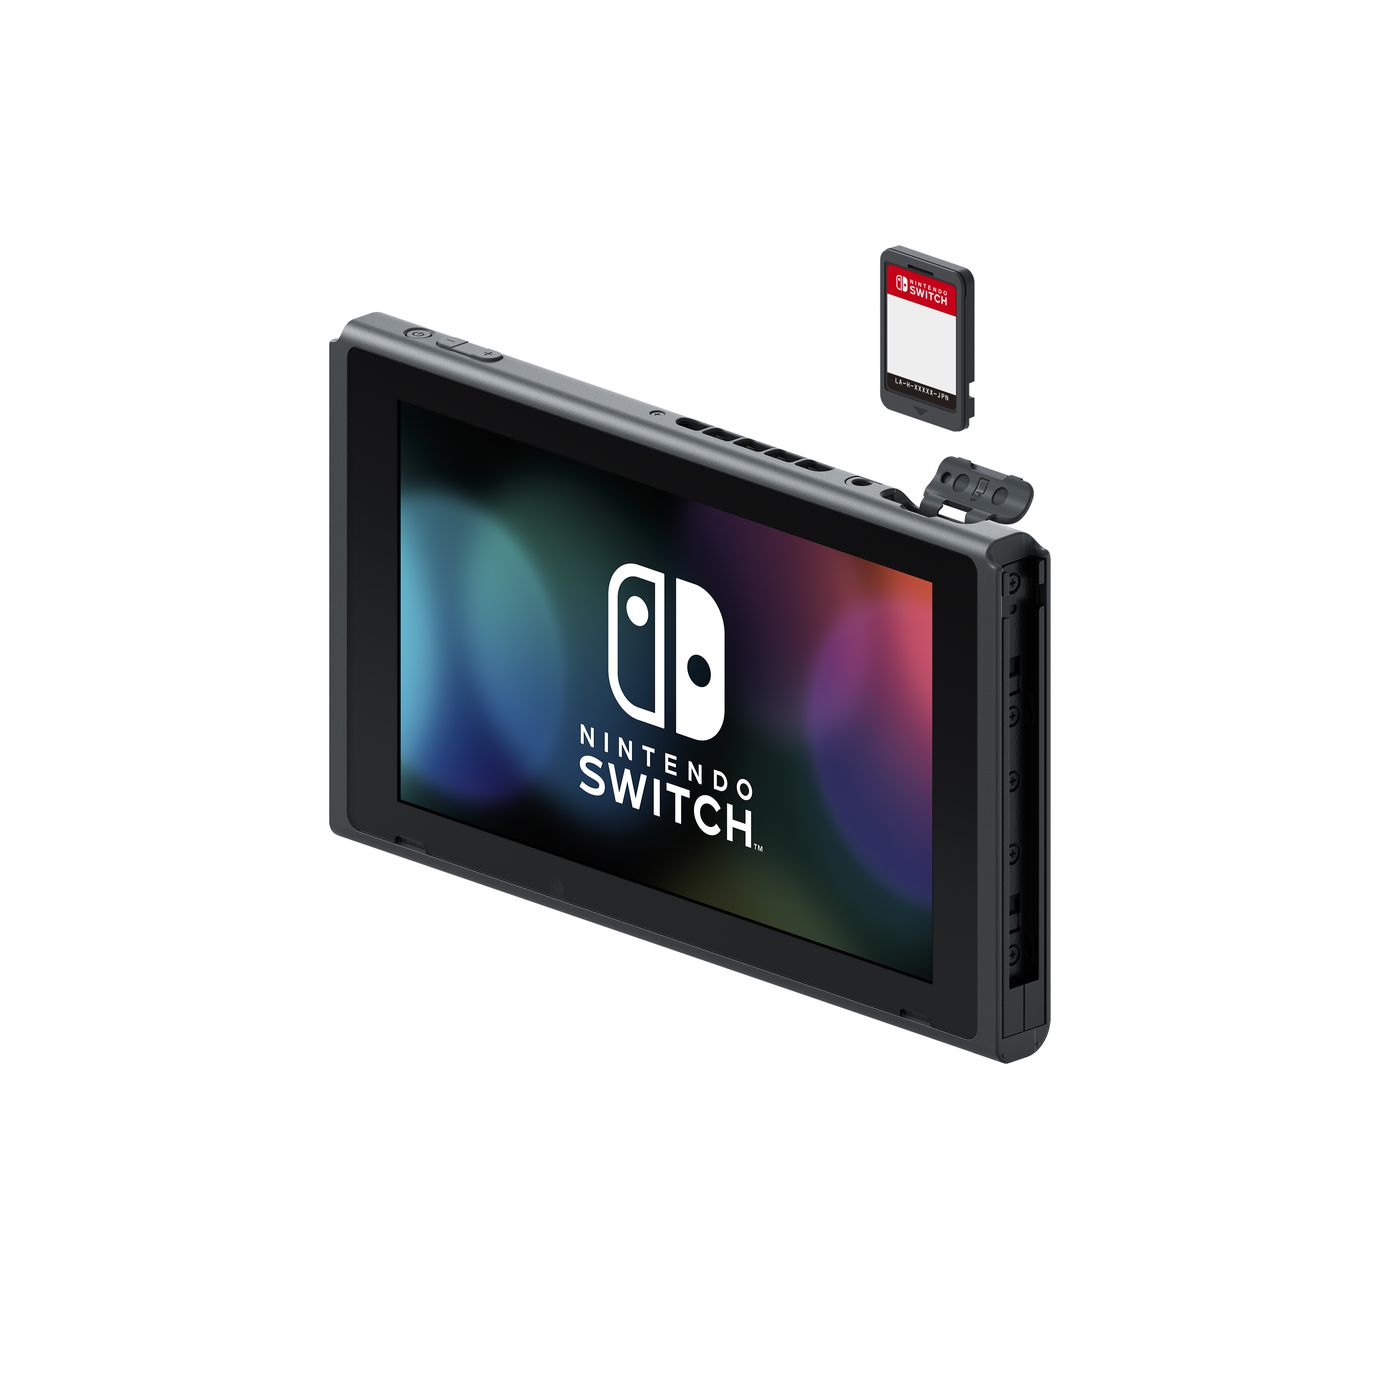 Four things you should get for your Nintendo Switch before